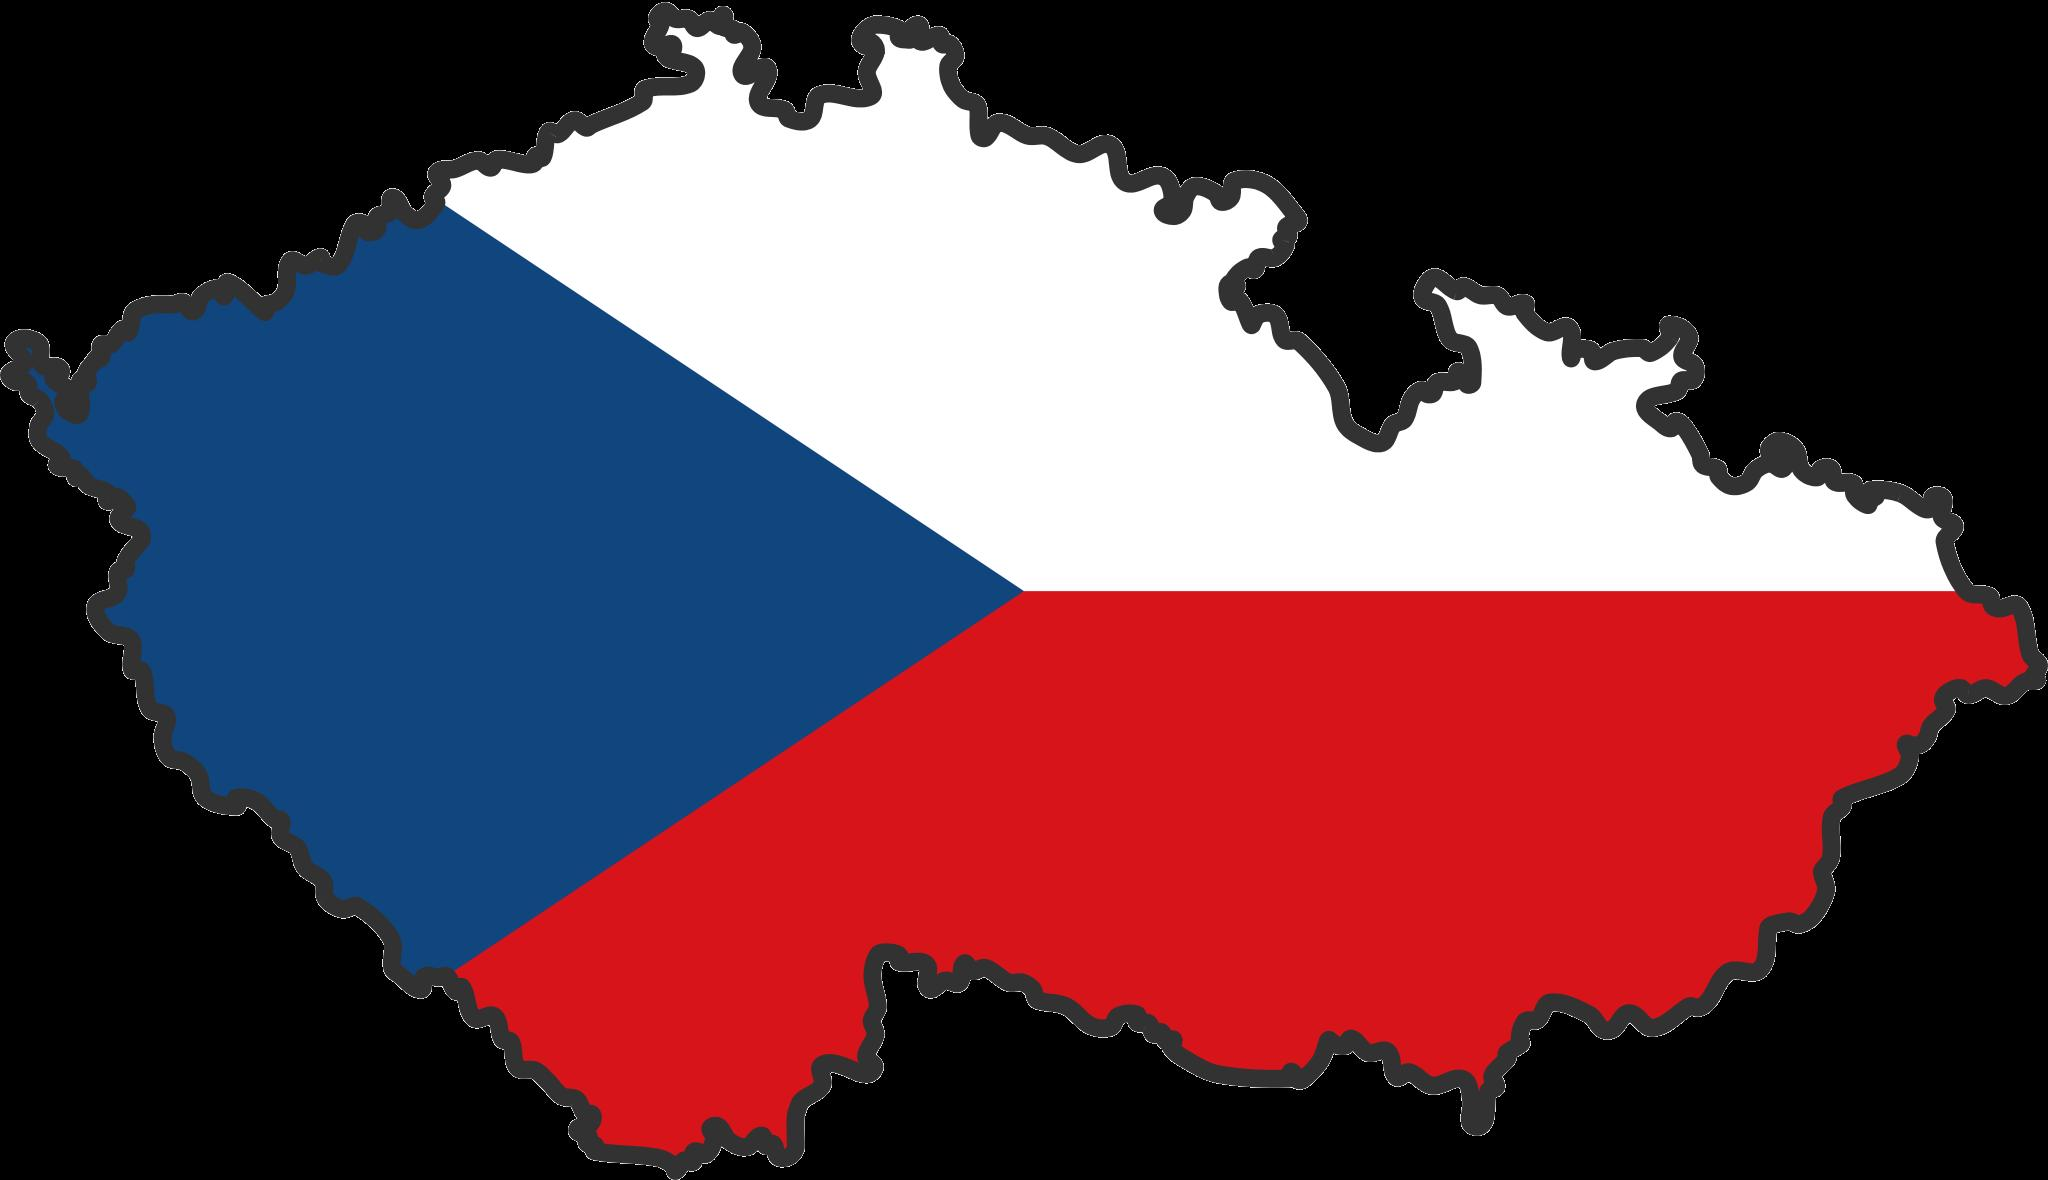 Czech Republic Flag Wallpapers for Android   APK Download 2048x1180